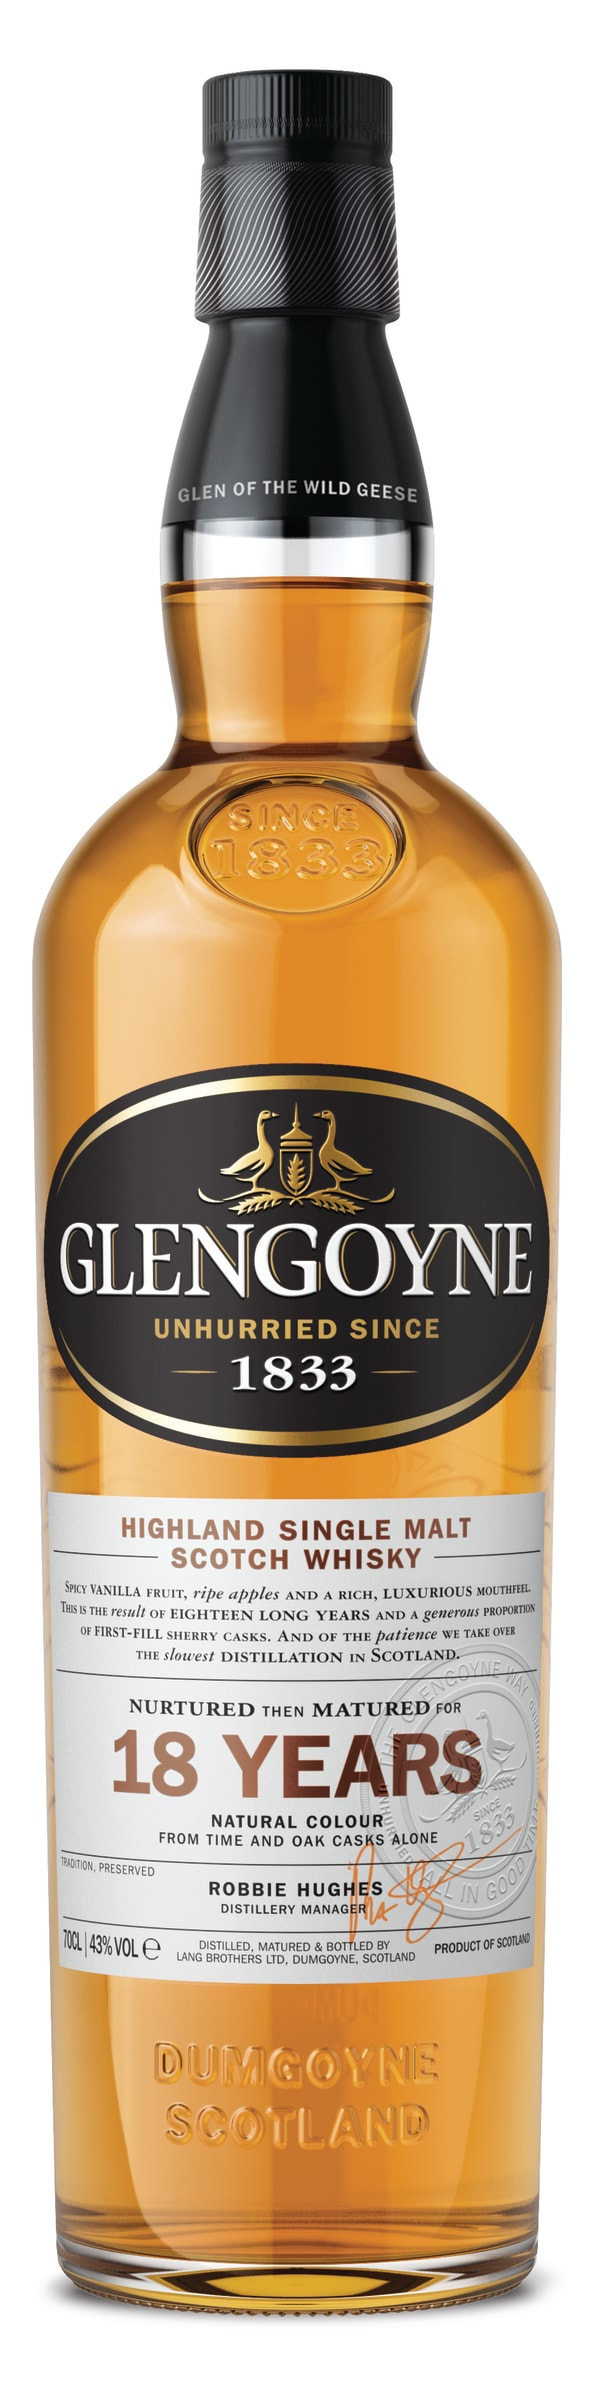 Glengoyne 18 Year Old Single Malt